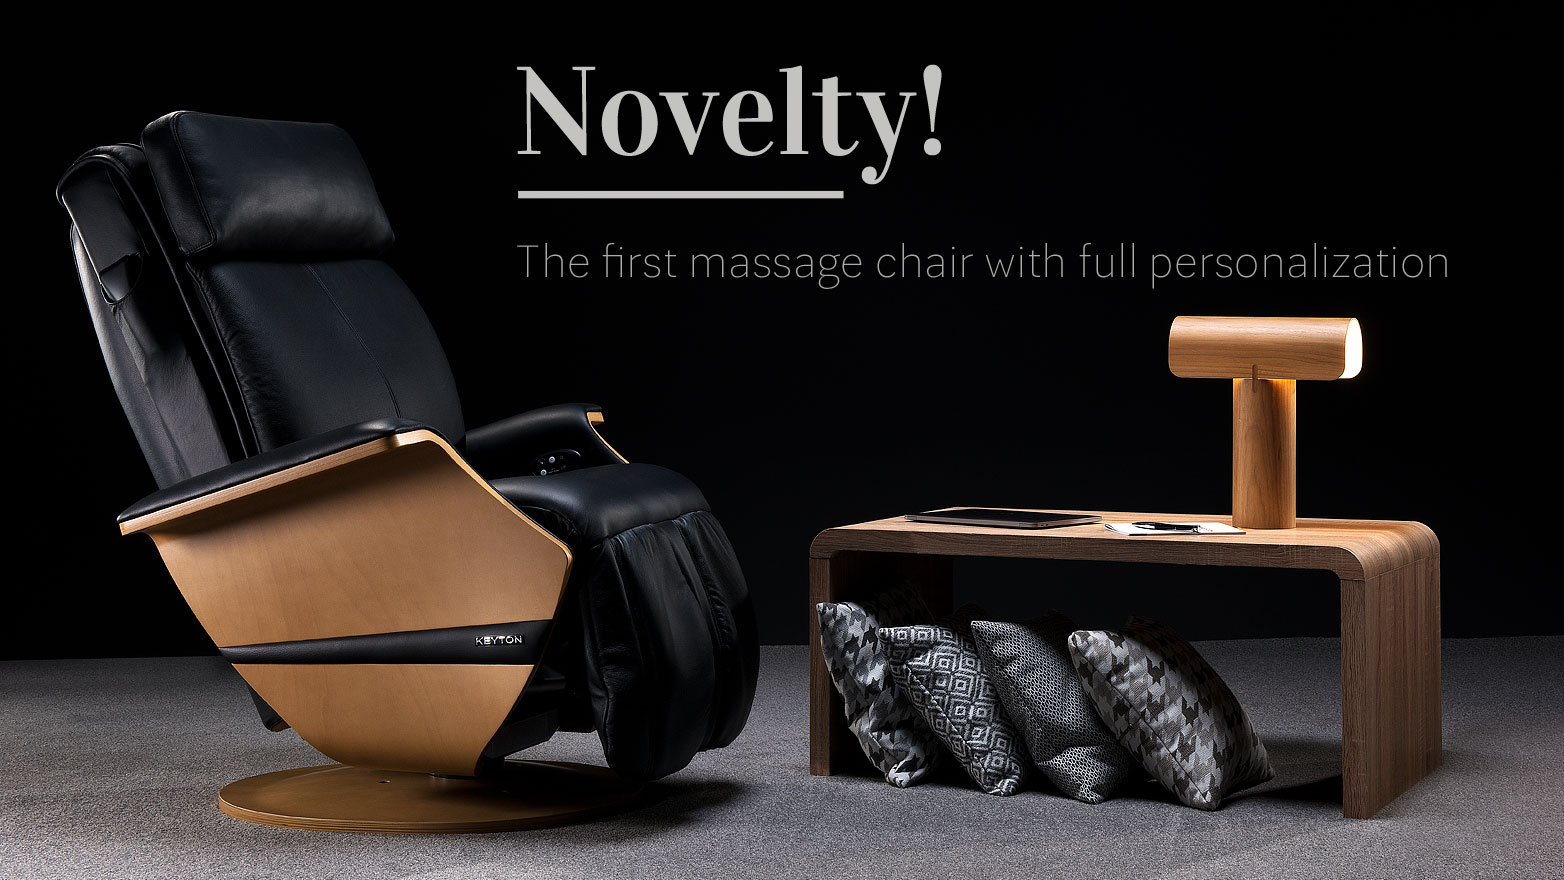 Massage chairs Keyton novelty Rest Lords